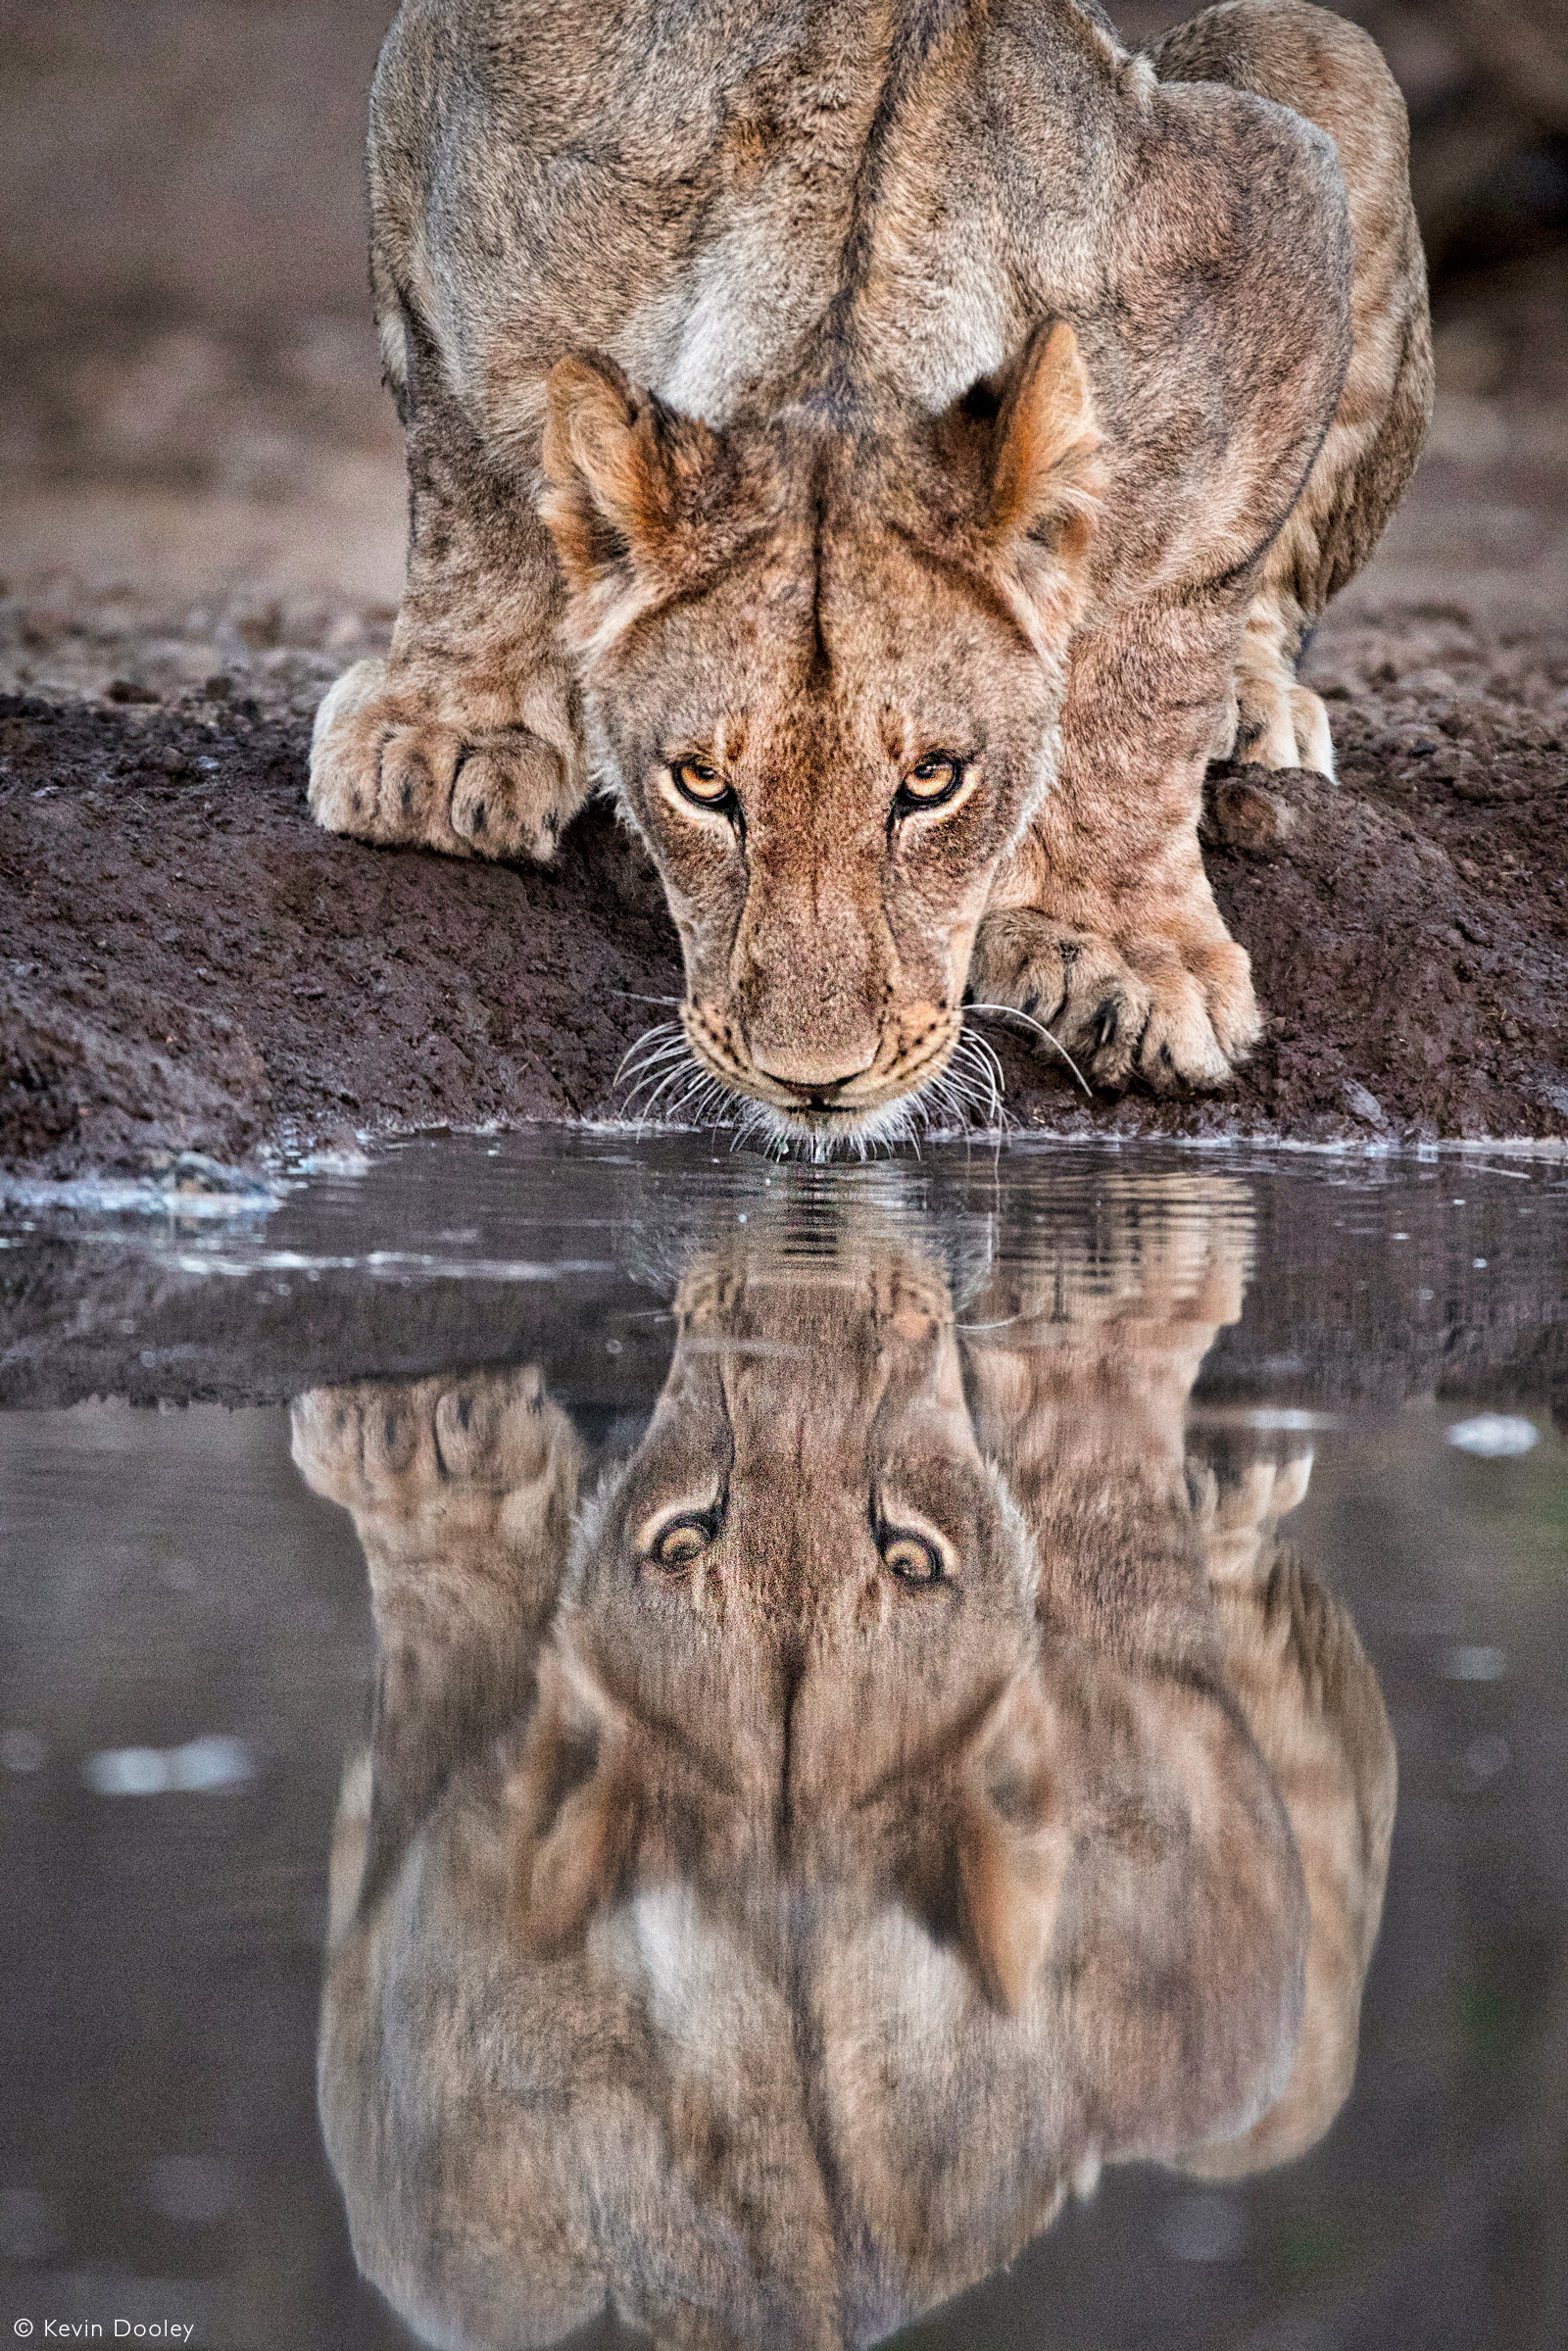 A lioness gets in a quick evening drink. Mashatu Game Reserve, Botswana © Kevin Dooley